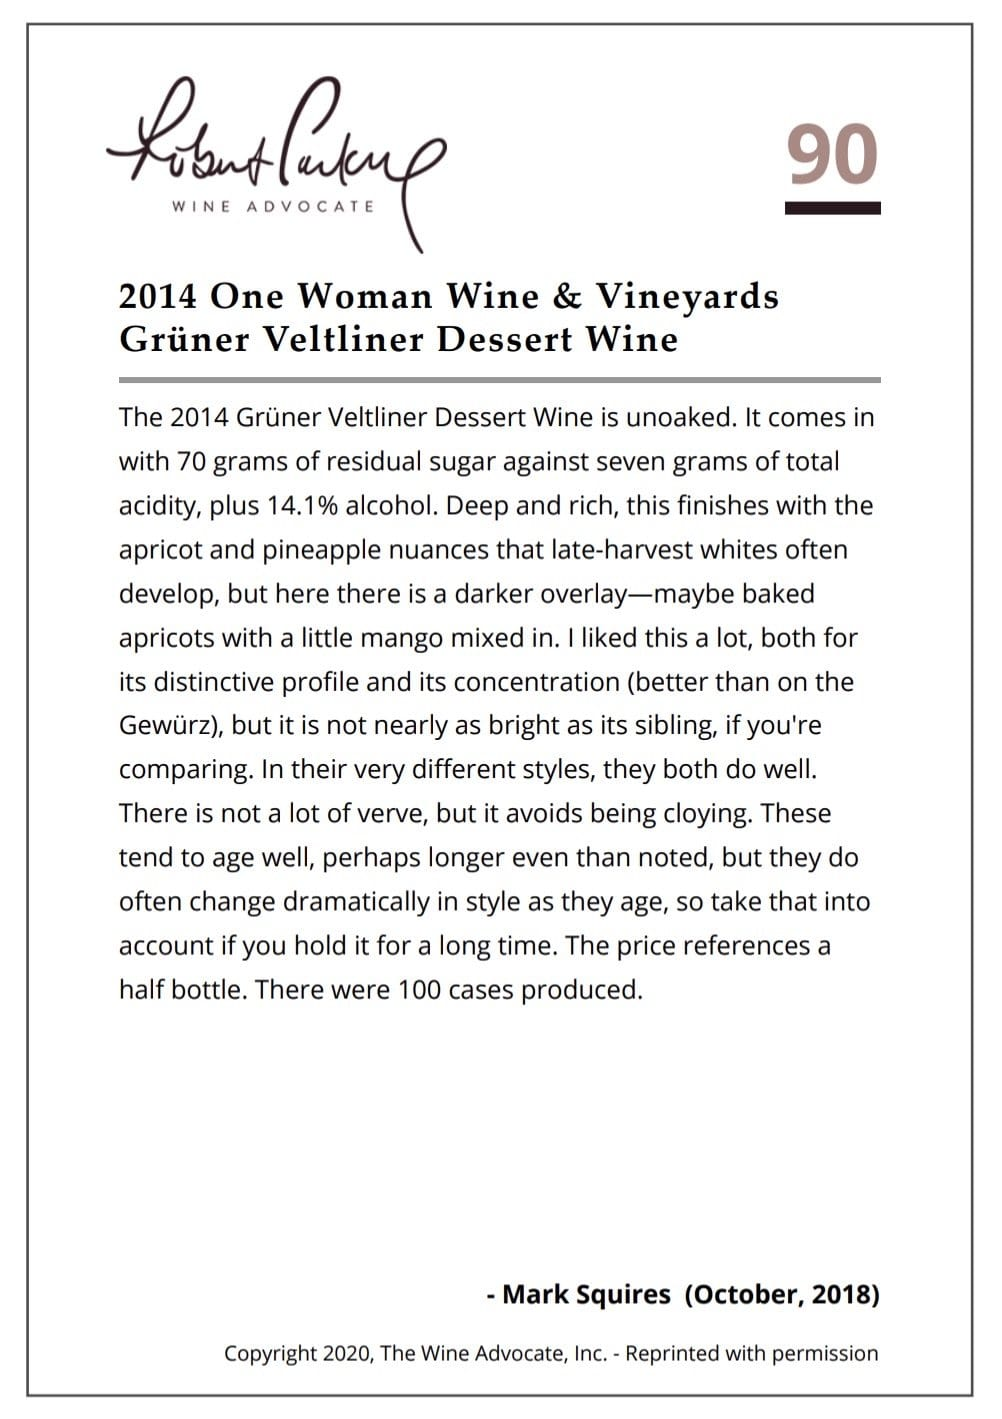 2014 One Woman Grüner Veltliner Dessert Wine Sweet One Woman